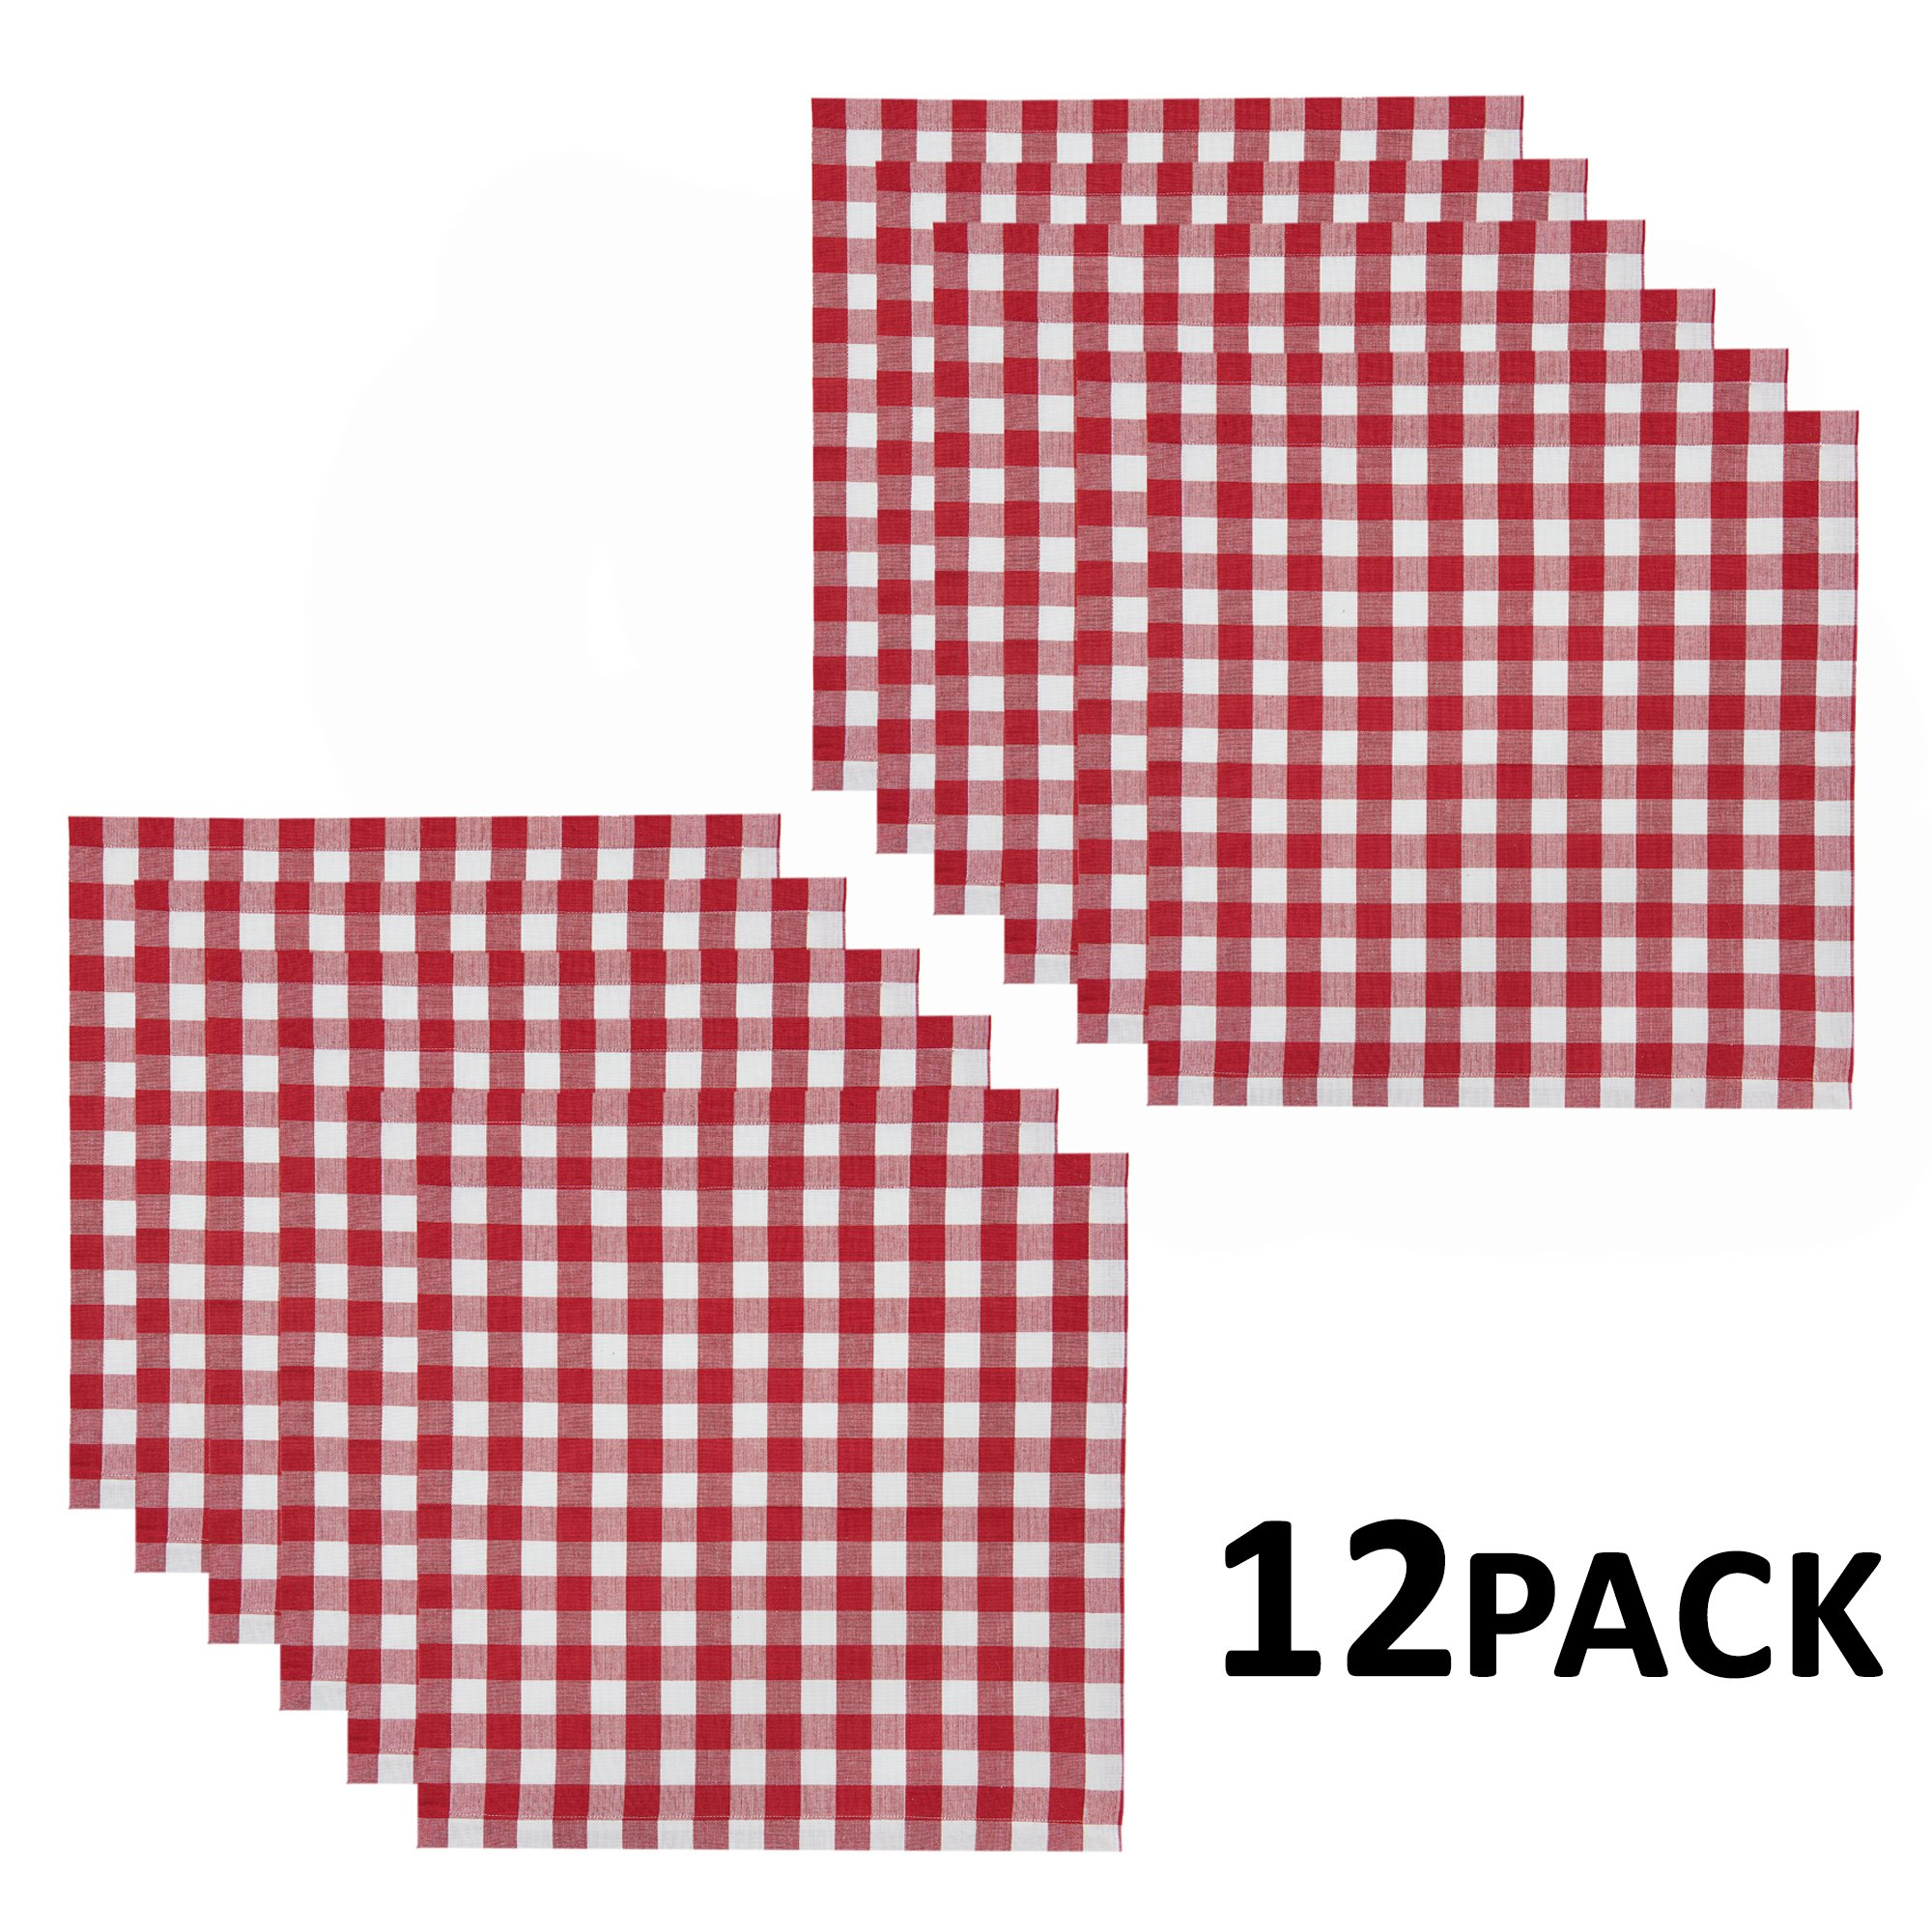 Cotton Craft 12 Pack Gingham Checks Oversized Dinner Napkins - Red - Size 20x20-100% Cotton - Tailored with mitered corners and a generous hem - Easy care machine wash by Cotton Craft (Image #3)